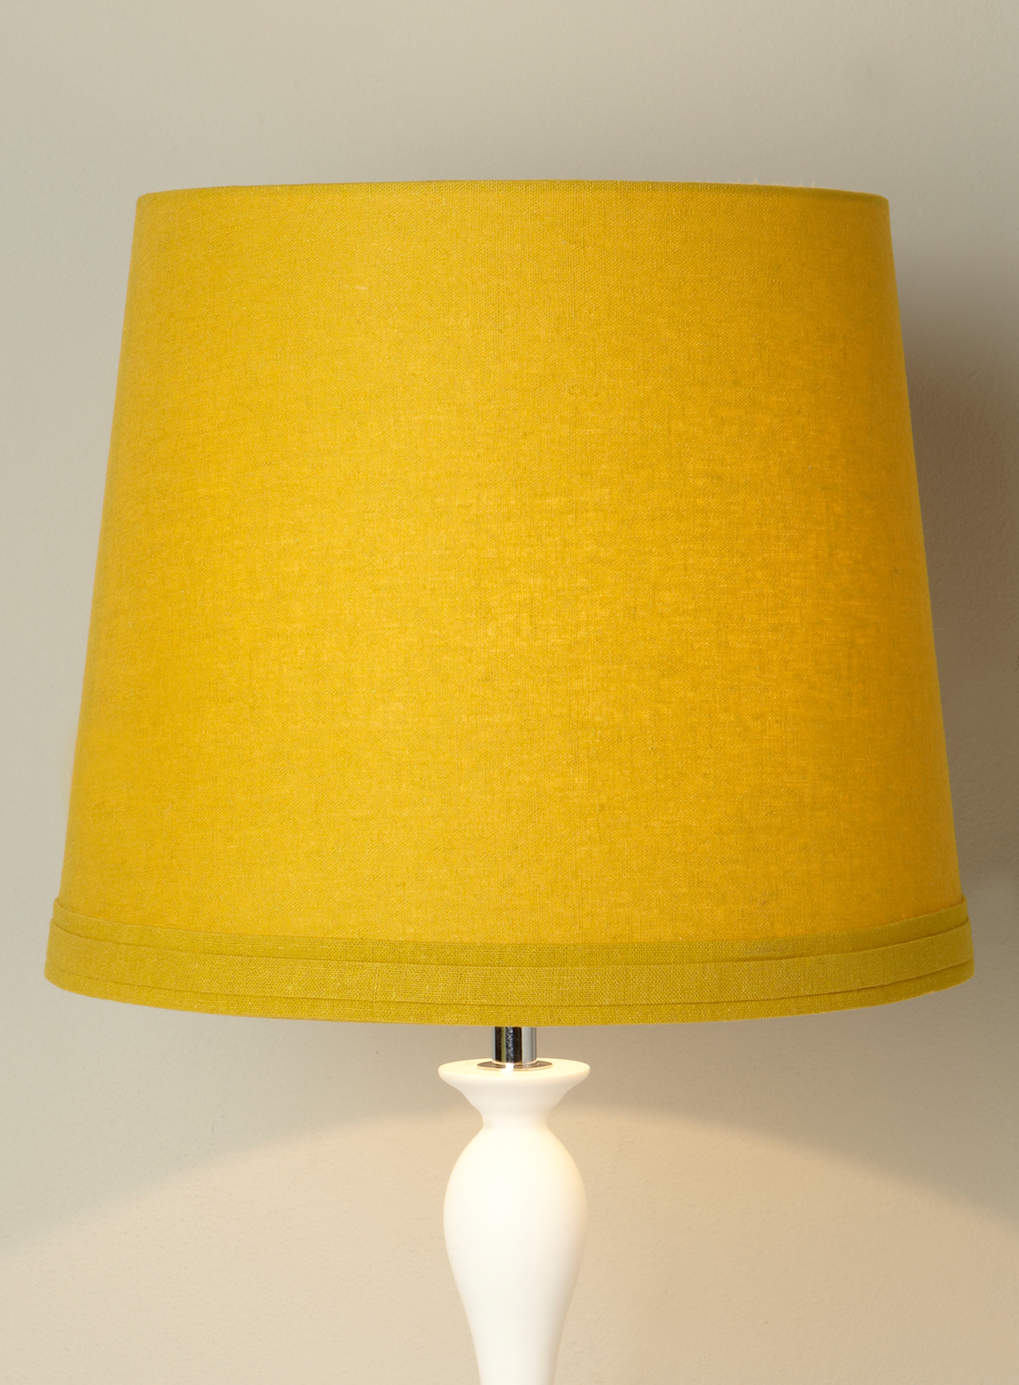 Bhs Wall Lamp Shades : Yellow shade - #tidylife